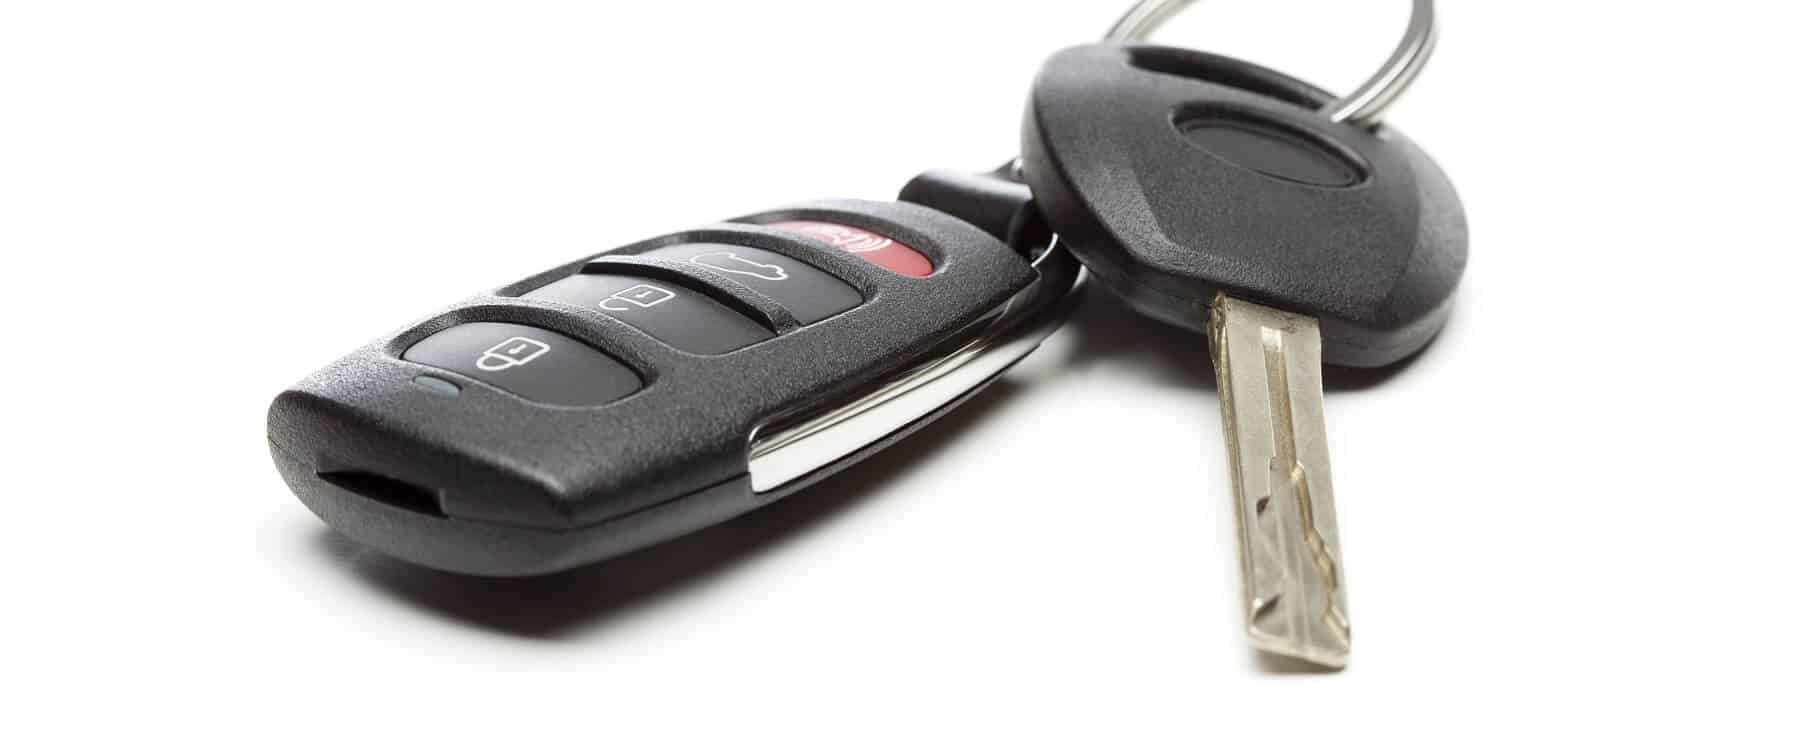 Modern Car Key and Remote